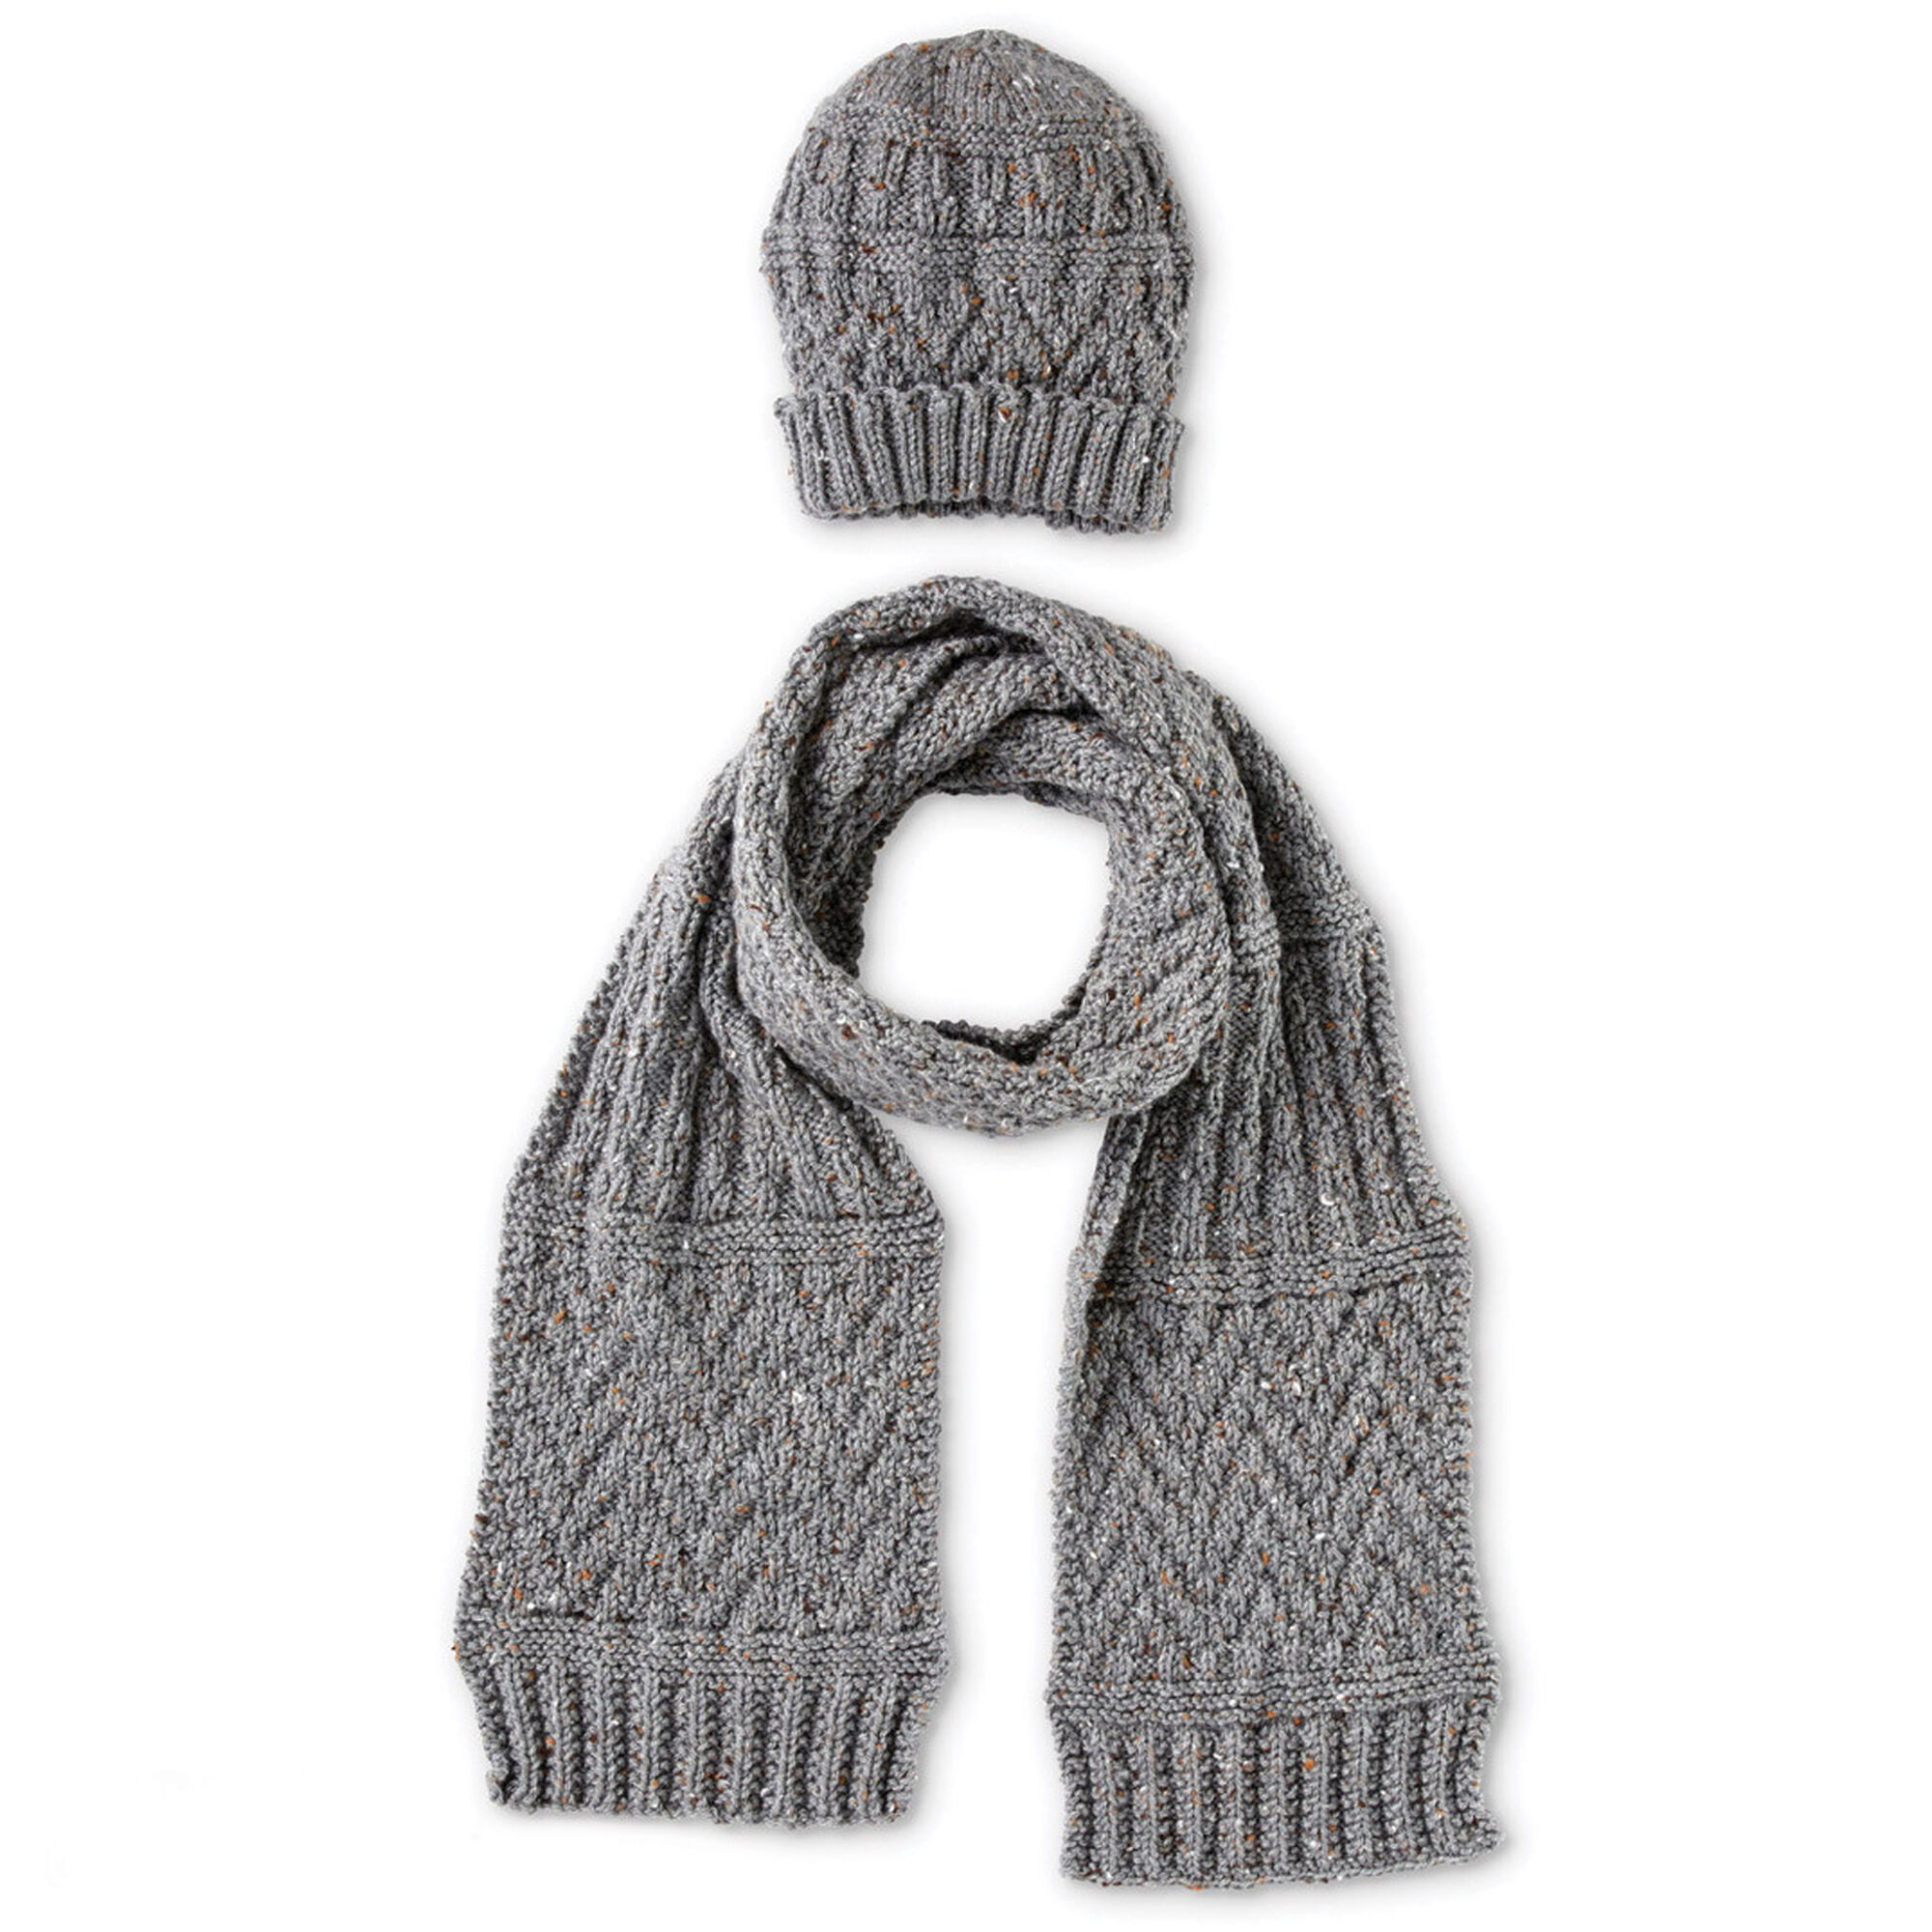 Caron Guernsey Textures Knit Hat and Scarf | Yarnspirations